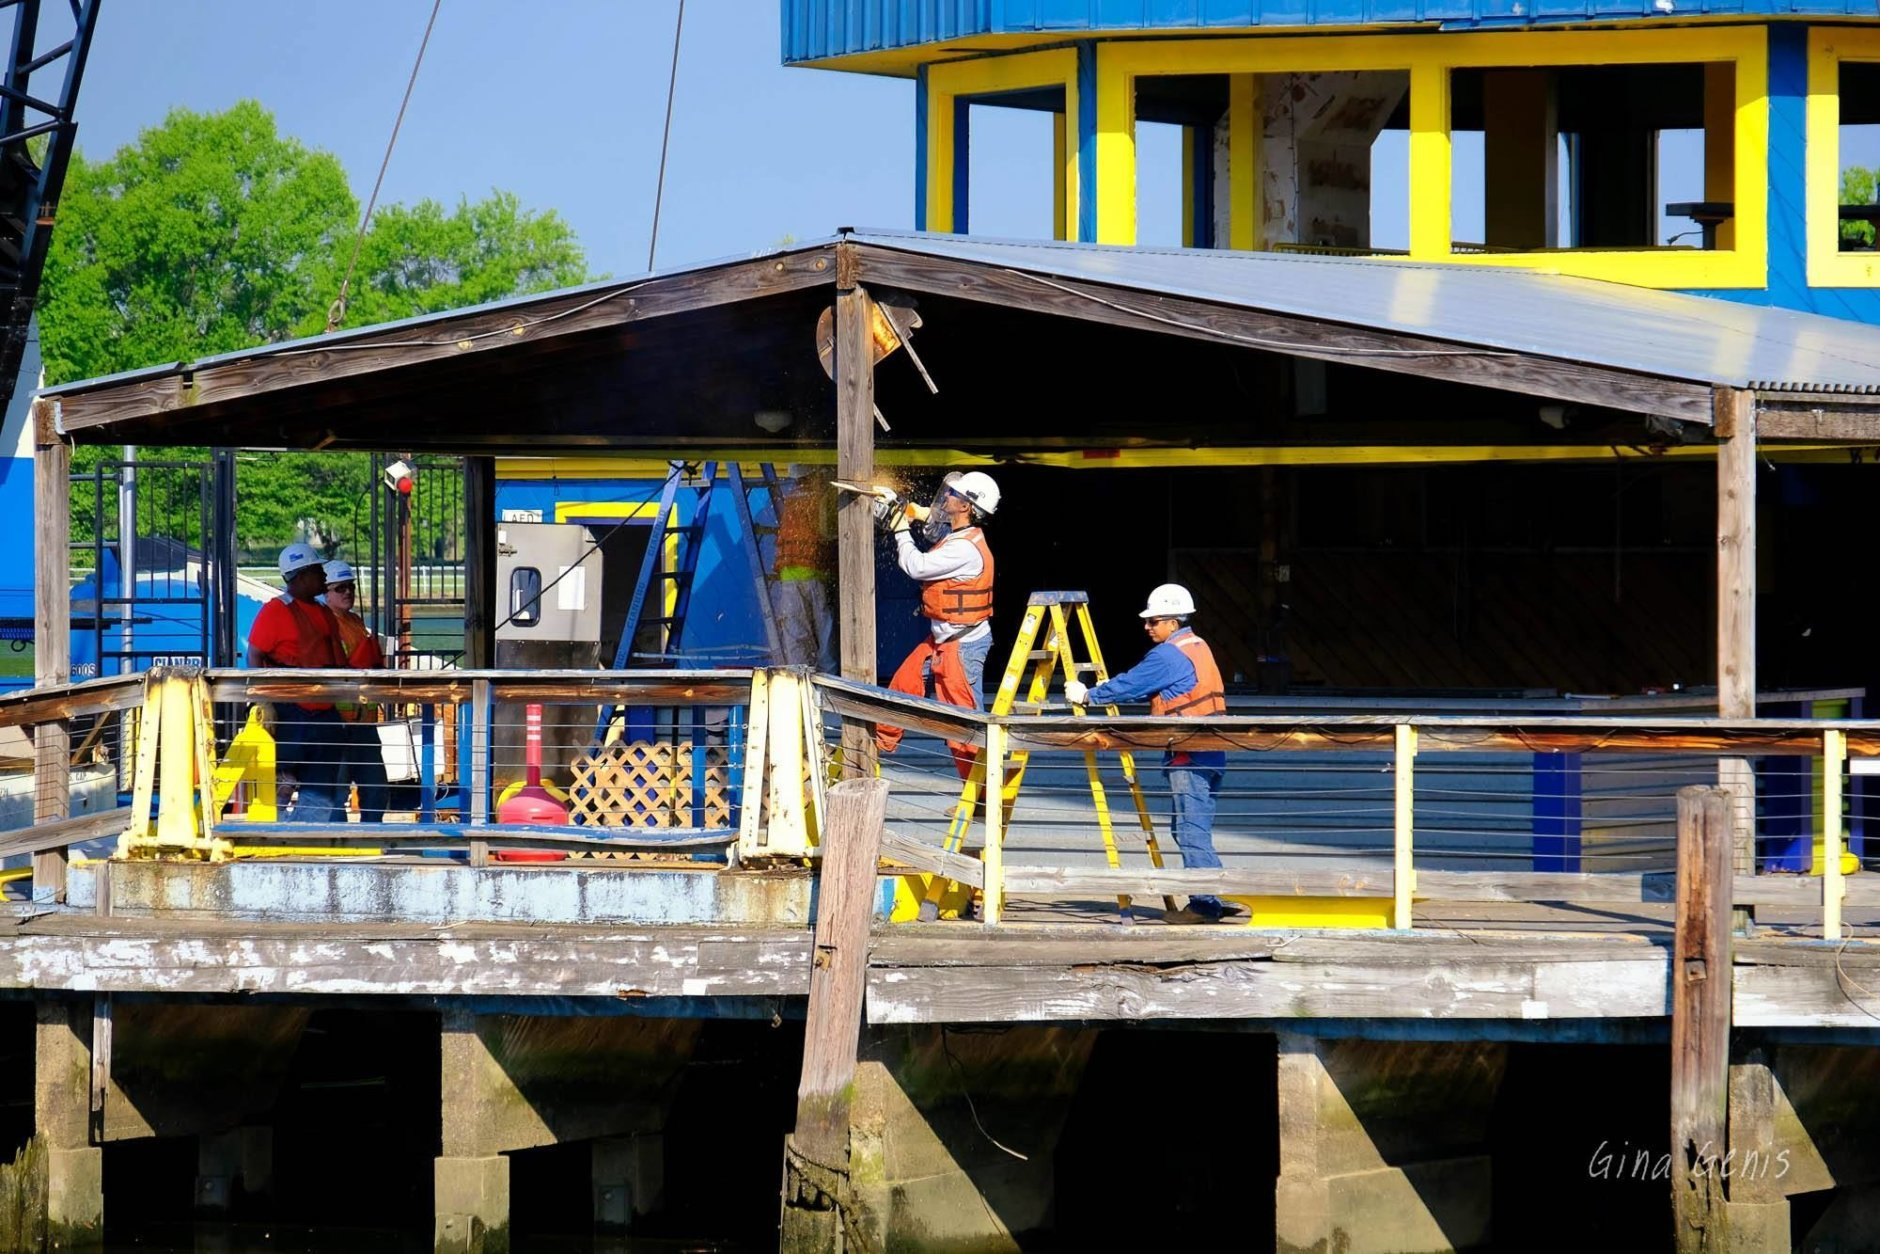 Workers saw the roof support beams at the Cantina Marina on Tuesday, May 8 2018. (Courtesy Gina Genis)